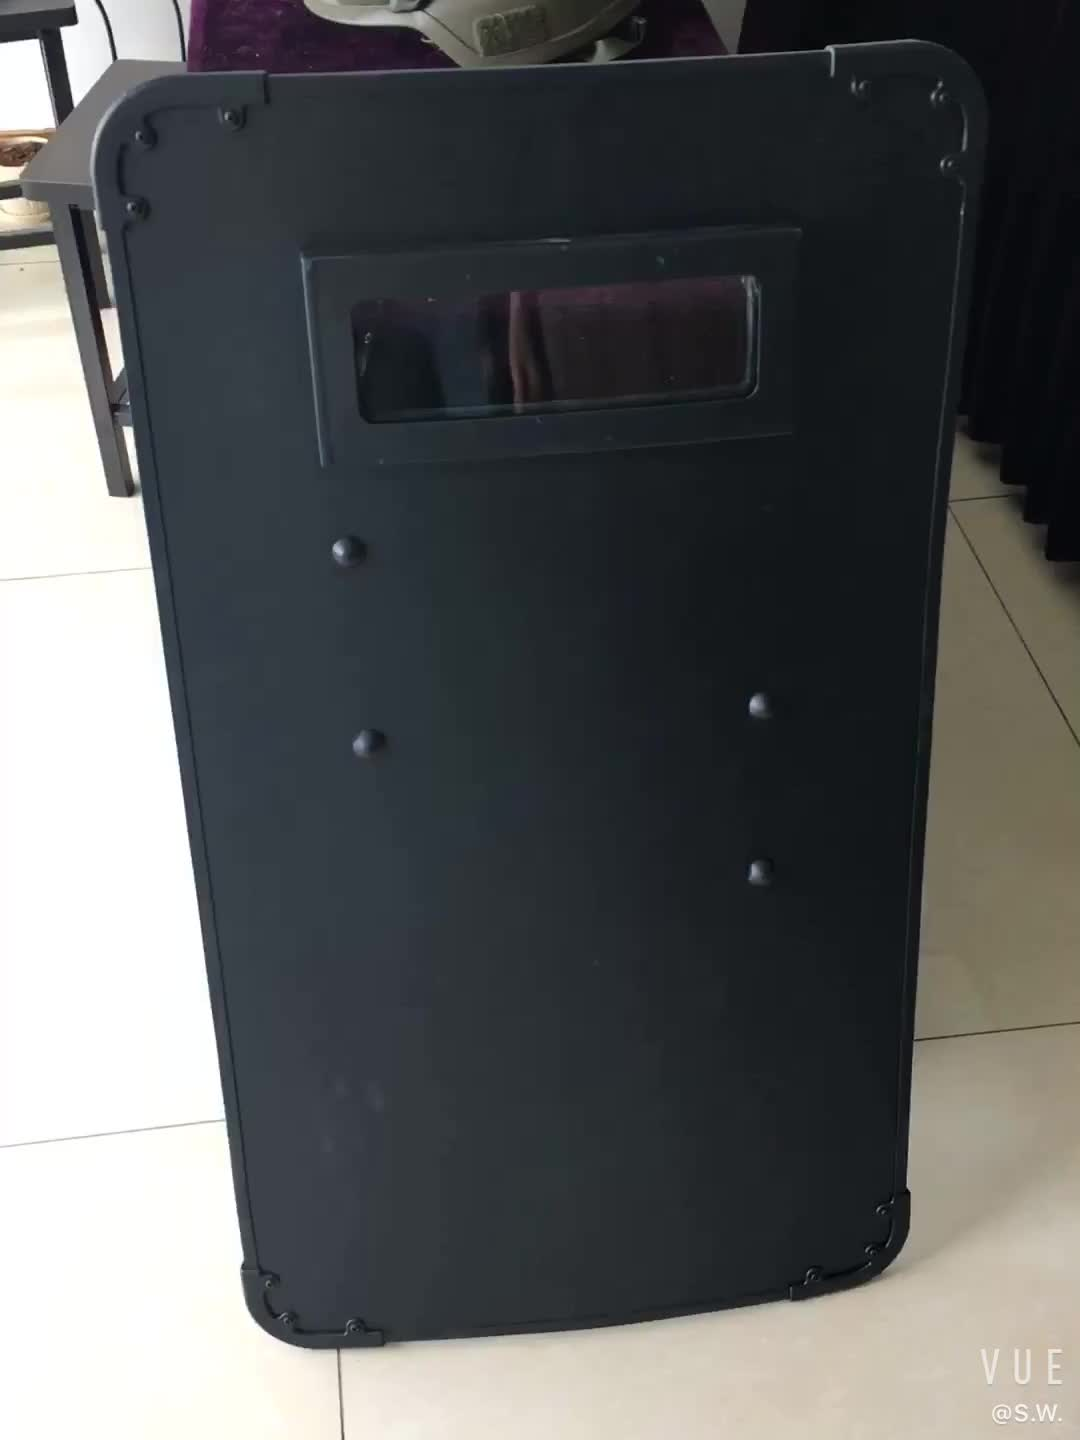 NIJ0108.01 Level III/IIIA PE Bullet Proof Protection Ballistic Shield Police Bulletproof Shield